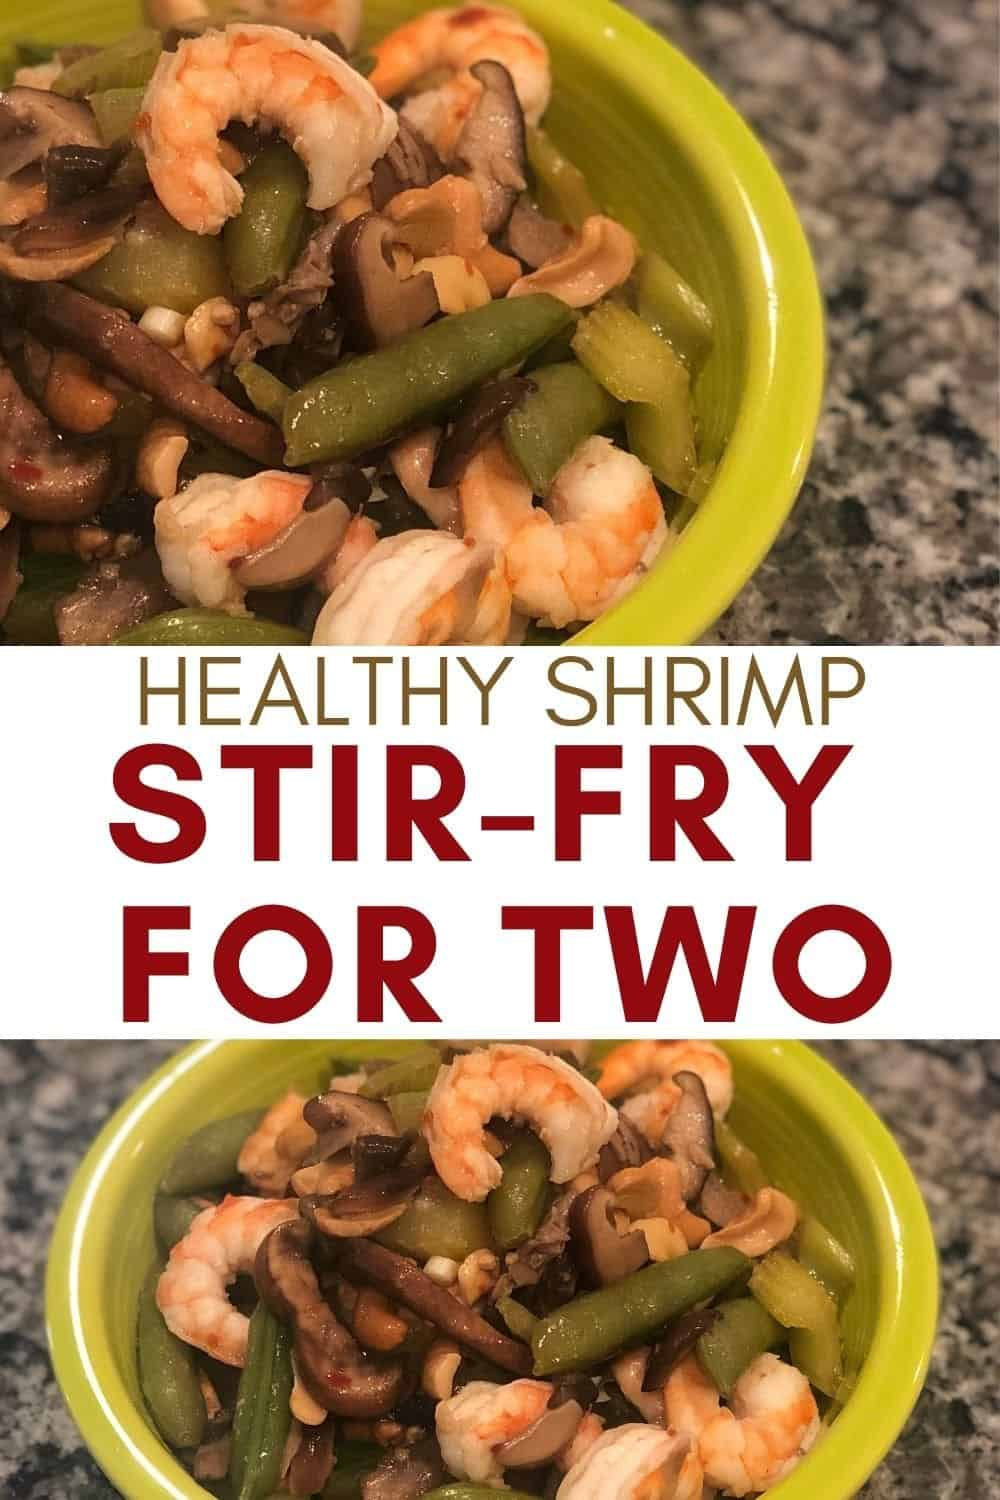 healthy shrimp stir fry for two in 2 bowls